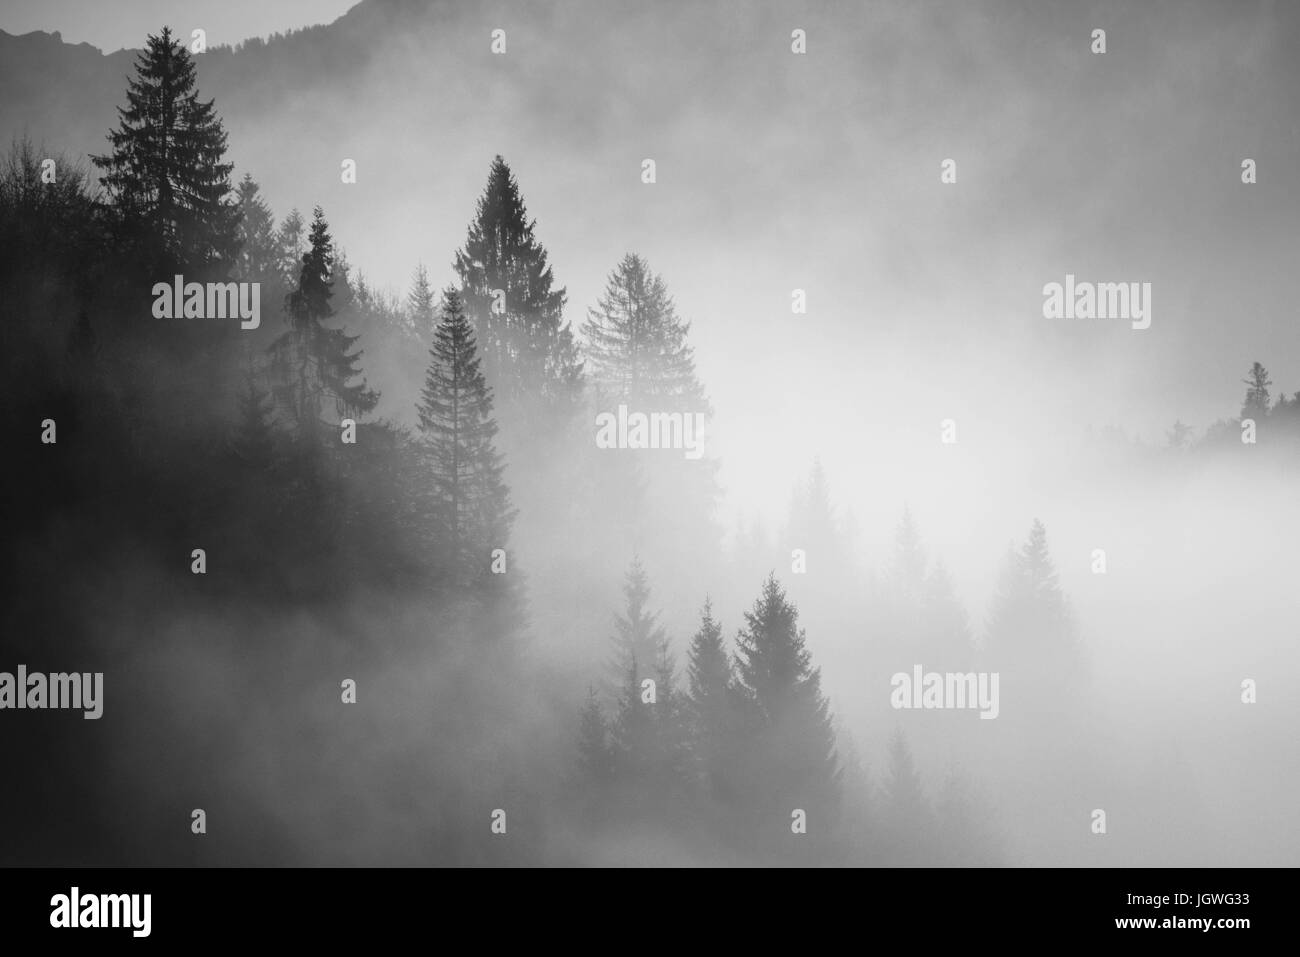 Forest lost in the mist - Stock Image